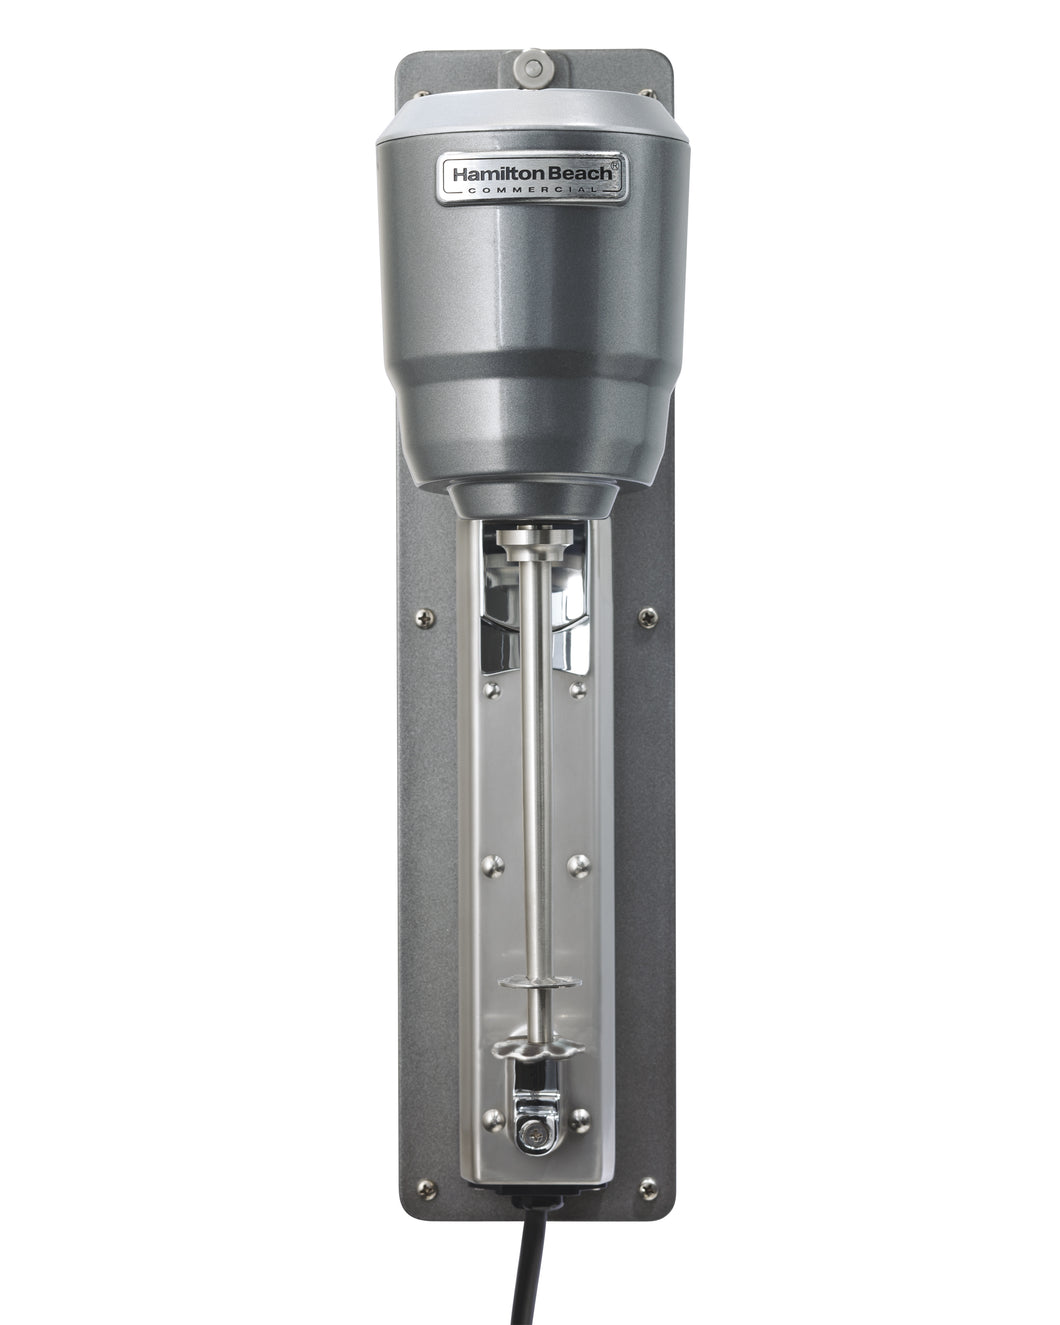 Hamilton Beach Commercial HMD300 Wall Mount Single Spindle Mixer, 1/3HP, 2 Speed, Pulse Switch, includes stainless steel cup